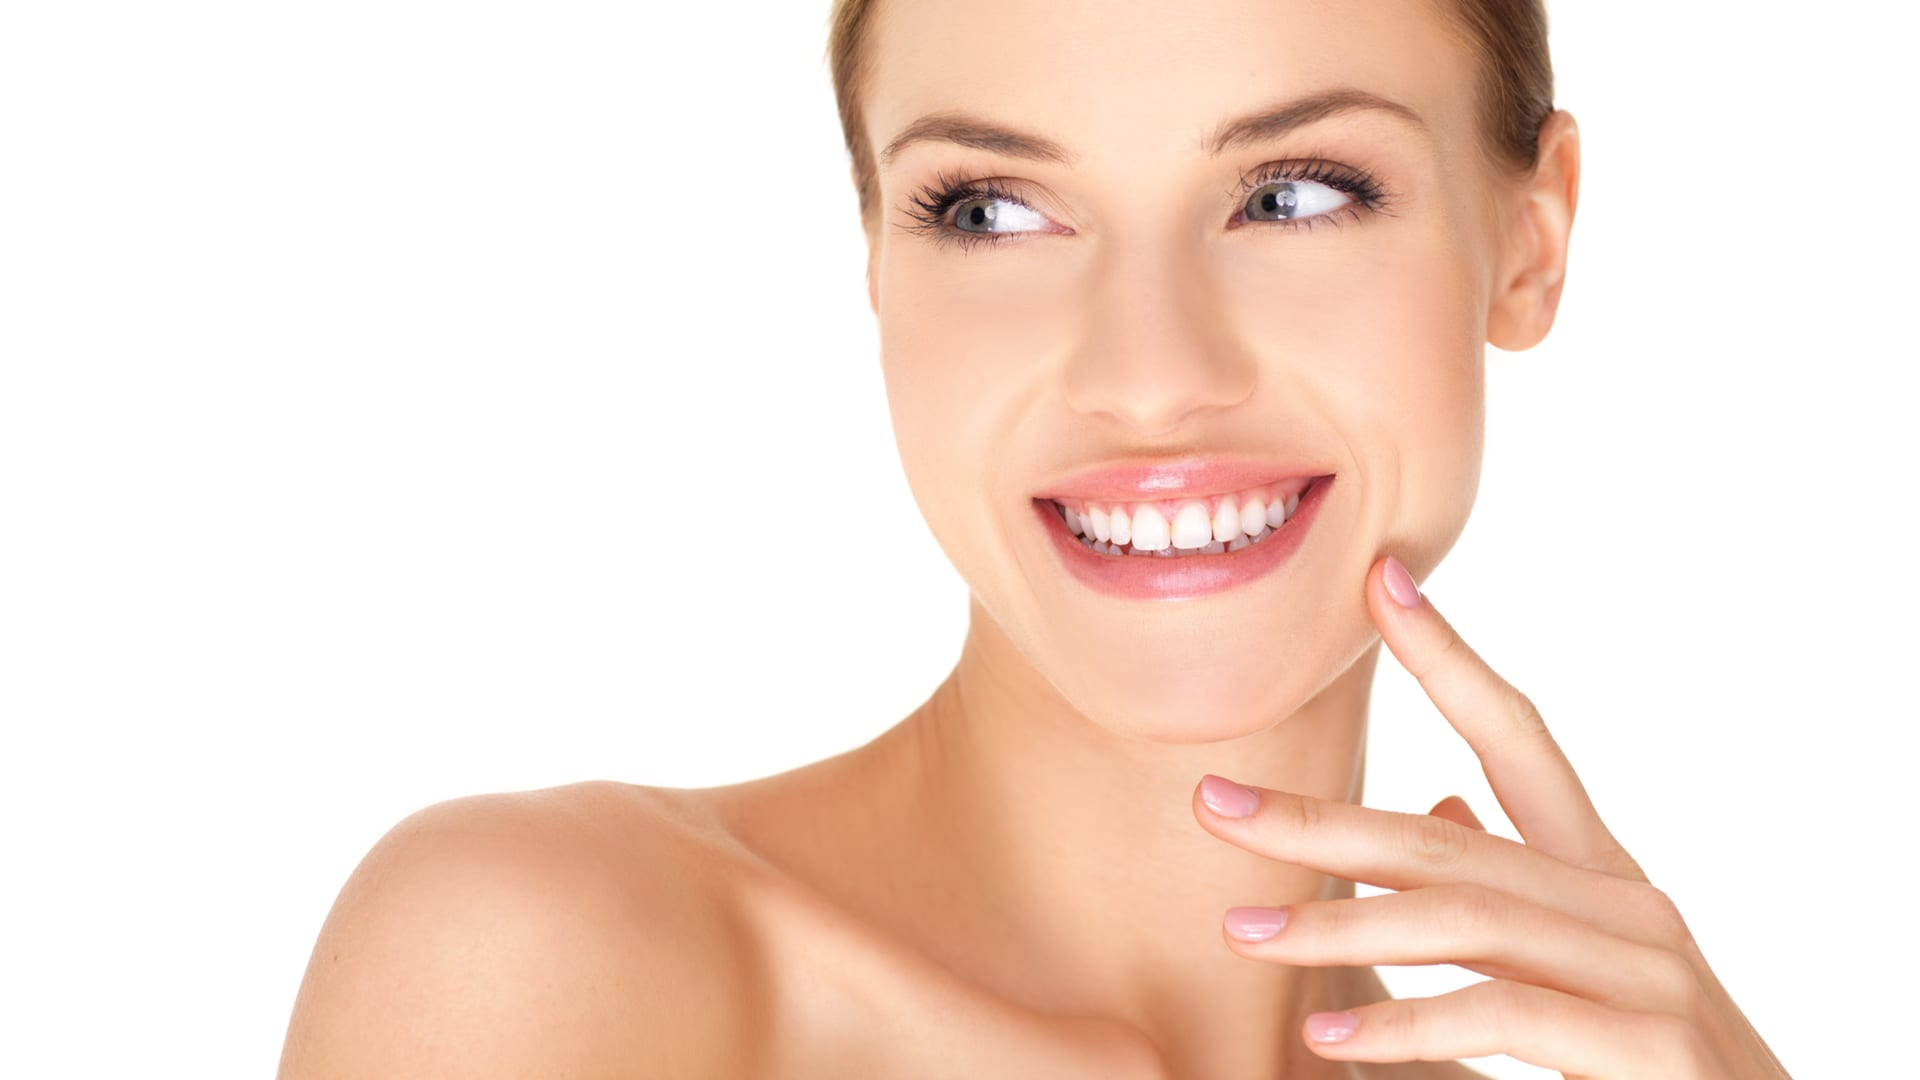 How to restore radiance to a youthful face.